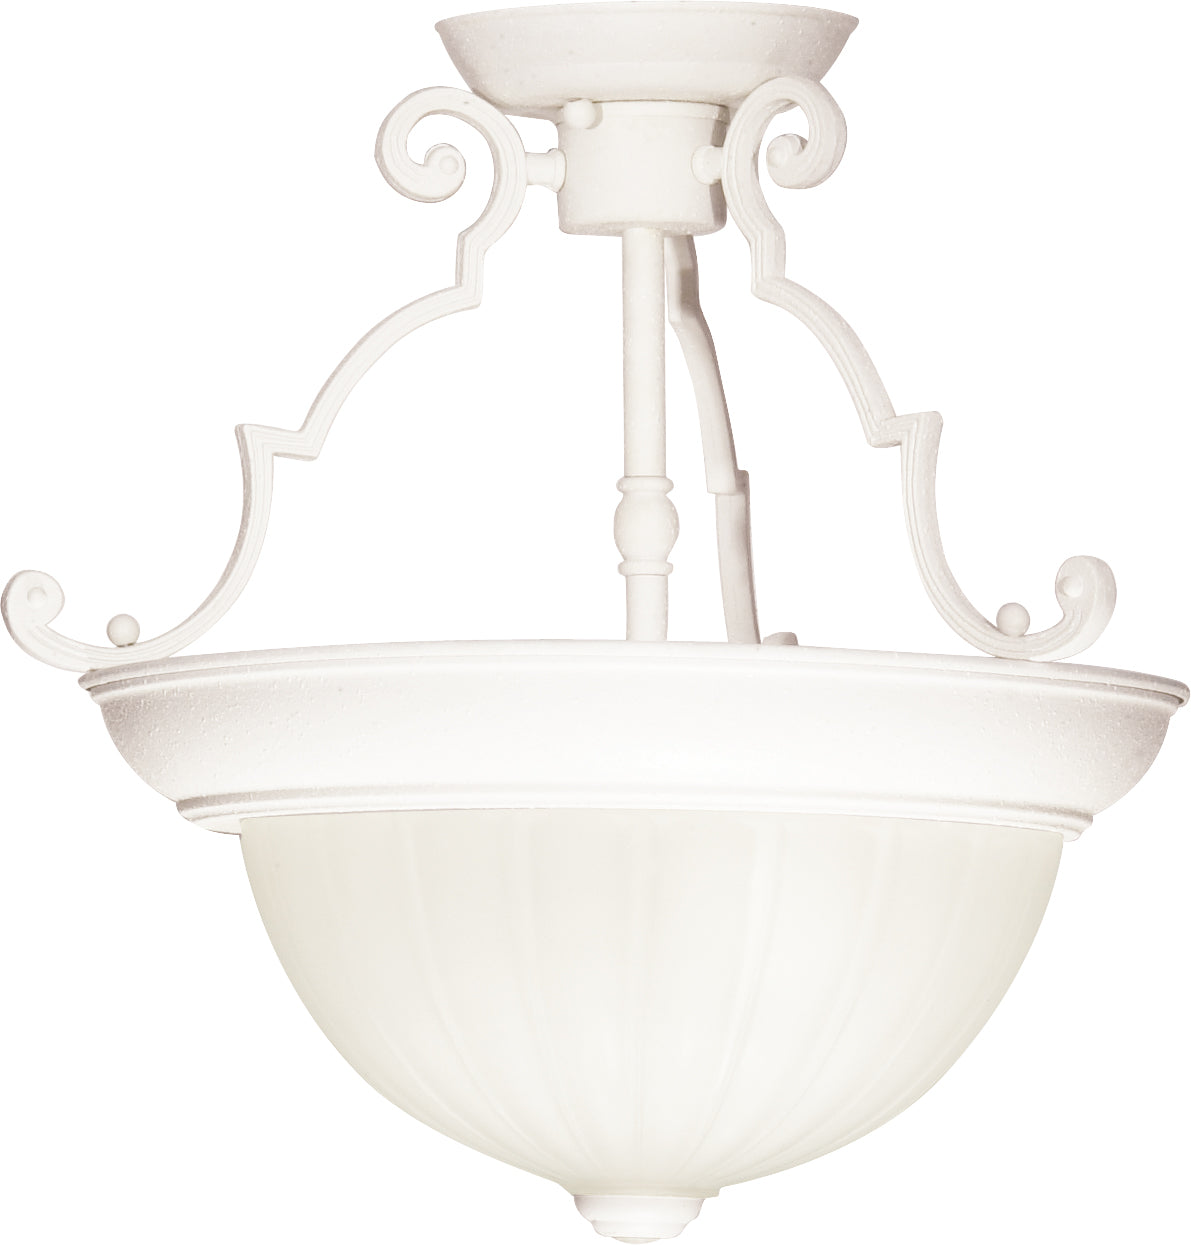 "2-Light 13"" Flush Mounted Light Fixture in Textured White Finish"